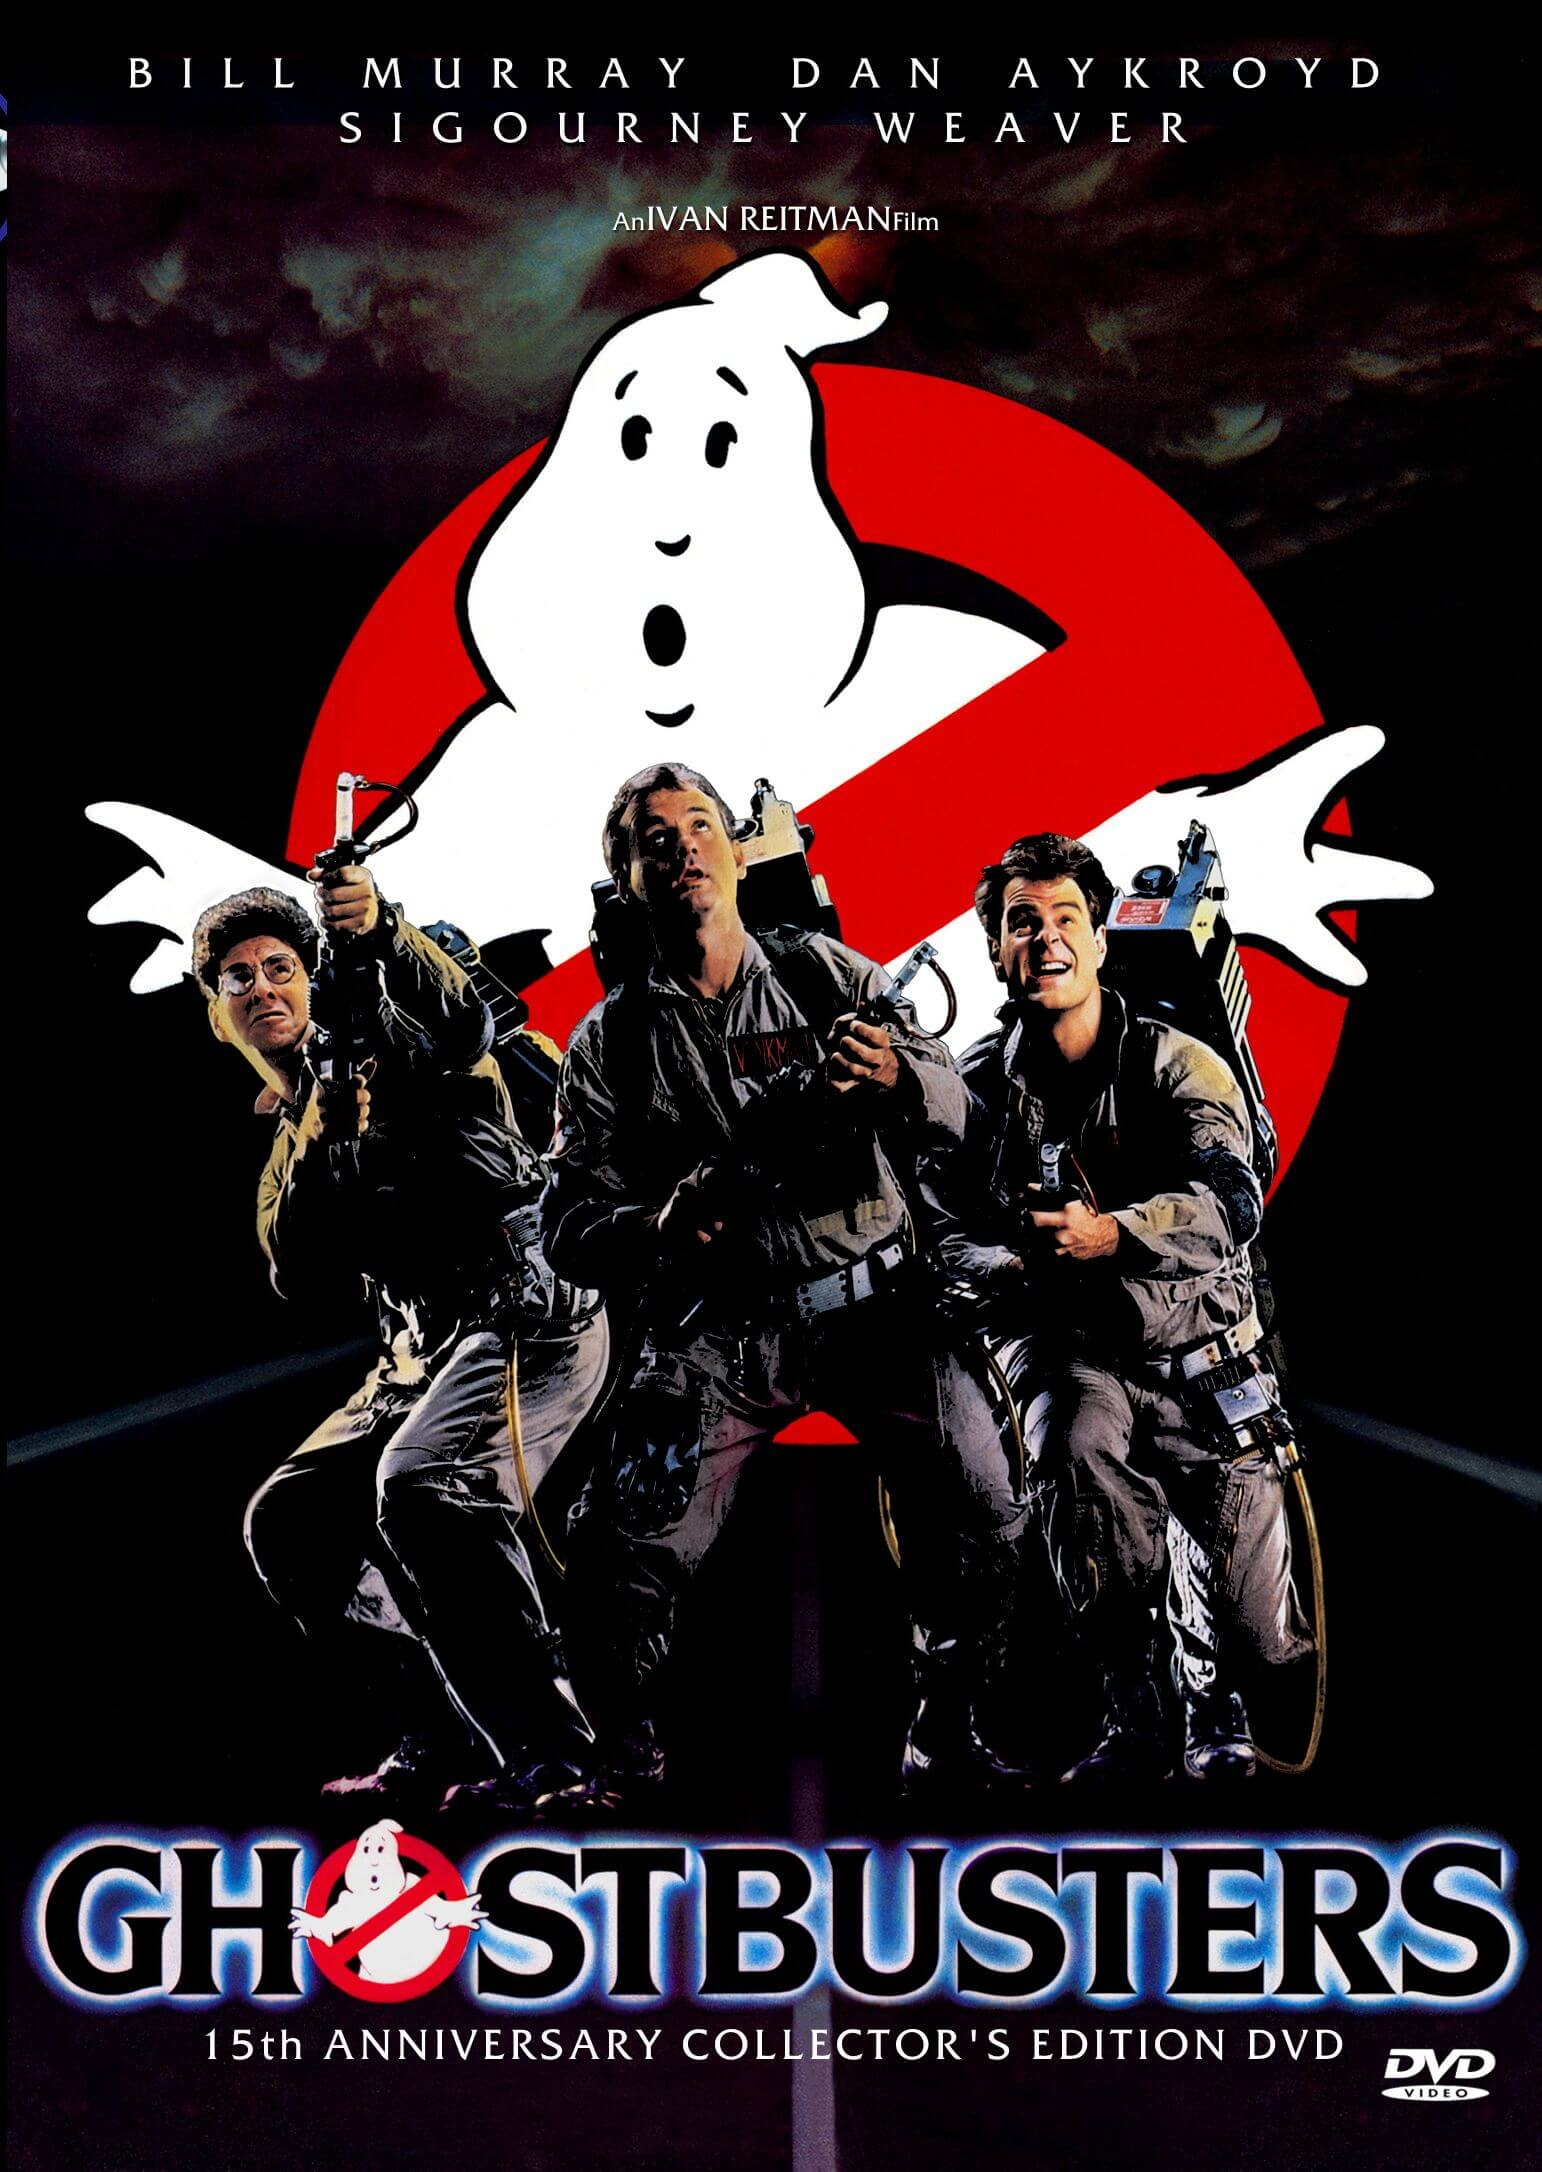 GHOSTBUSTER halloween movie